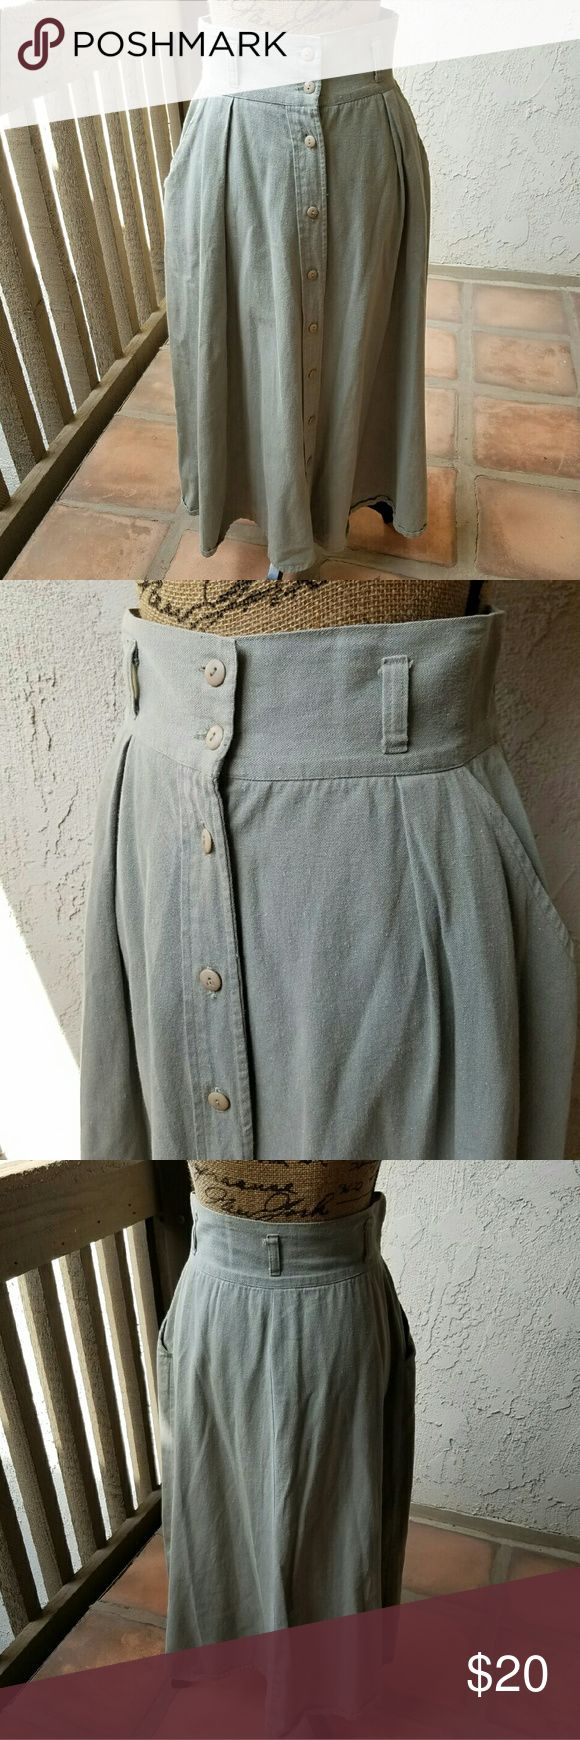 """Light khaki denim skirt button front Pale khaki colored denim skirt buttons down the front... super soft material... 100 % cotton.... side pockets in the front ...the 2nd buttonhole  at the waist  is slightly frayed,but you don't see it when it's buttoned.. the length is somewhere between mini & maxi, measures approximately 28"""" around the waist and approx. 34"""" from the waistband to the hem....tu10... swat Skirts A-Line or Full"""